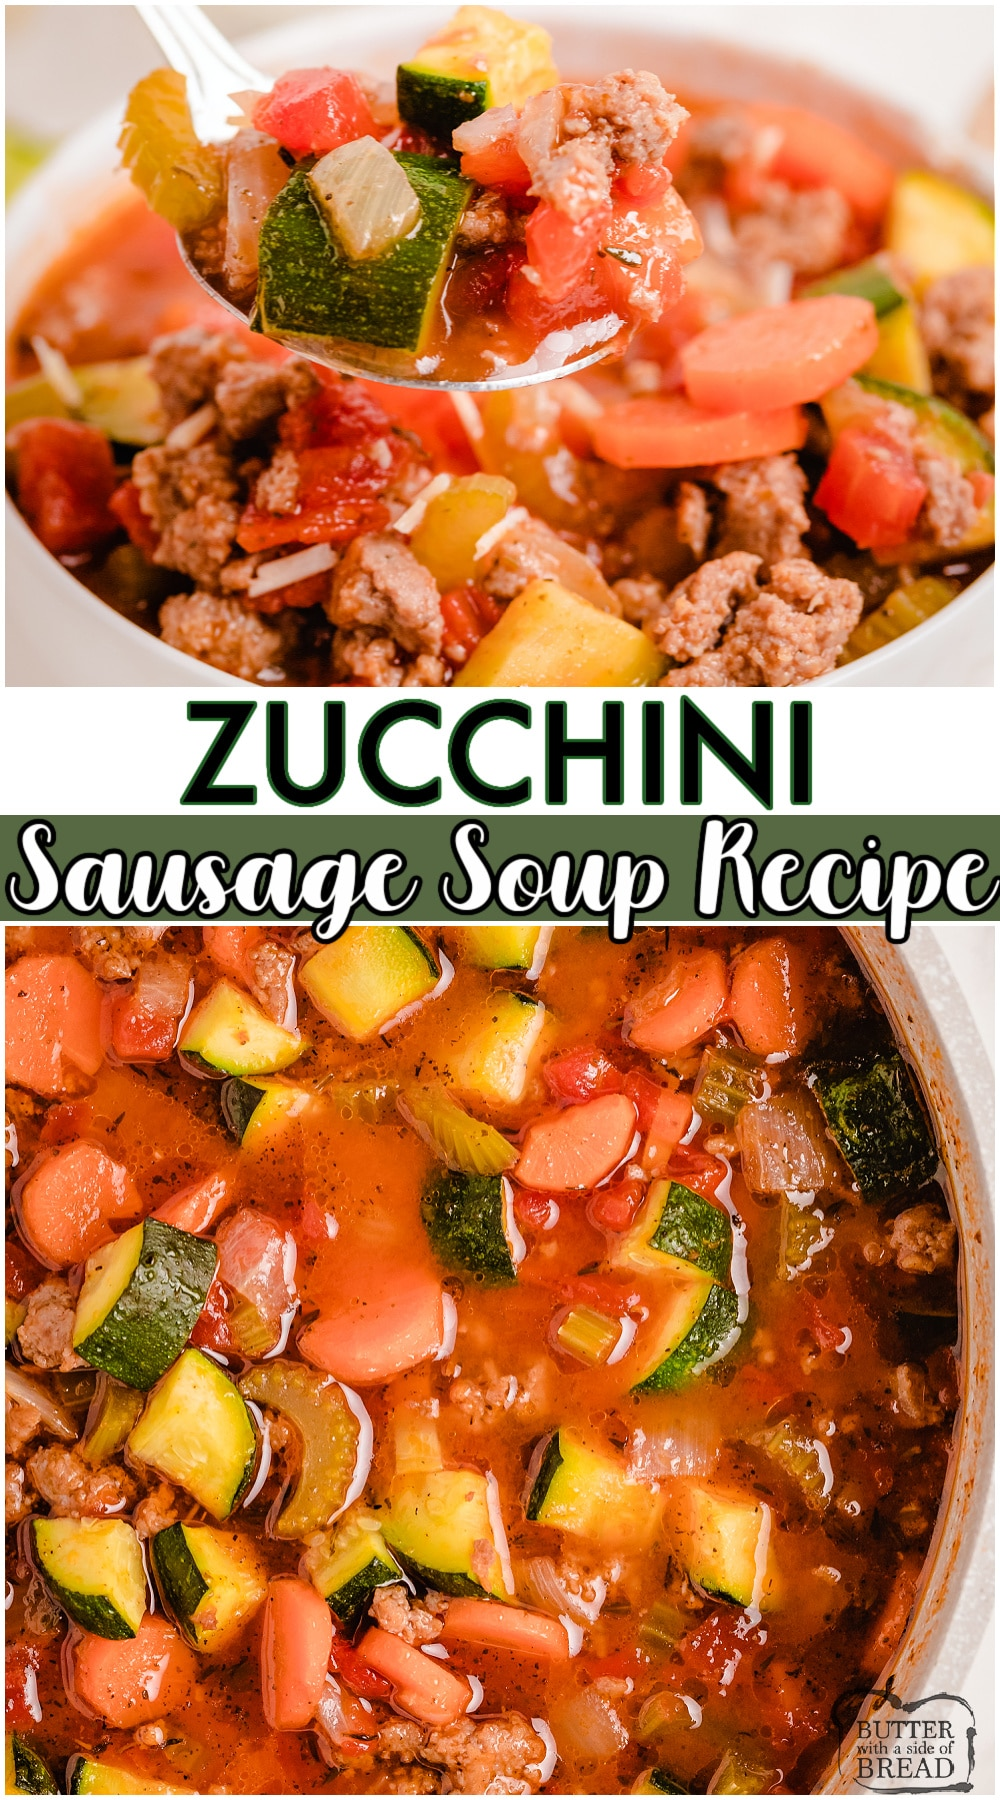 Zucchini Sausage Soup made with fresh zucchini, tomatoes, sausage & a flavorful blend of spices. Fantastic sausage soup with zucchini topped with Parmesan cheese for when the garden is still overflowing! #soup #zucchini #sausage #dinner #easyrecipe from BUTTER WITH A SIDE OF BREAD